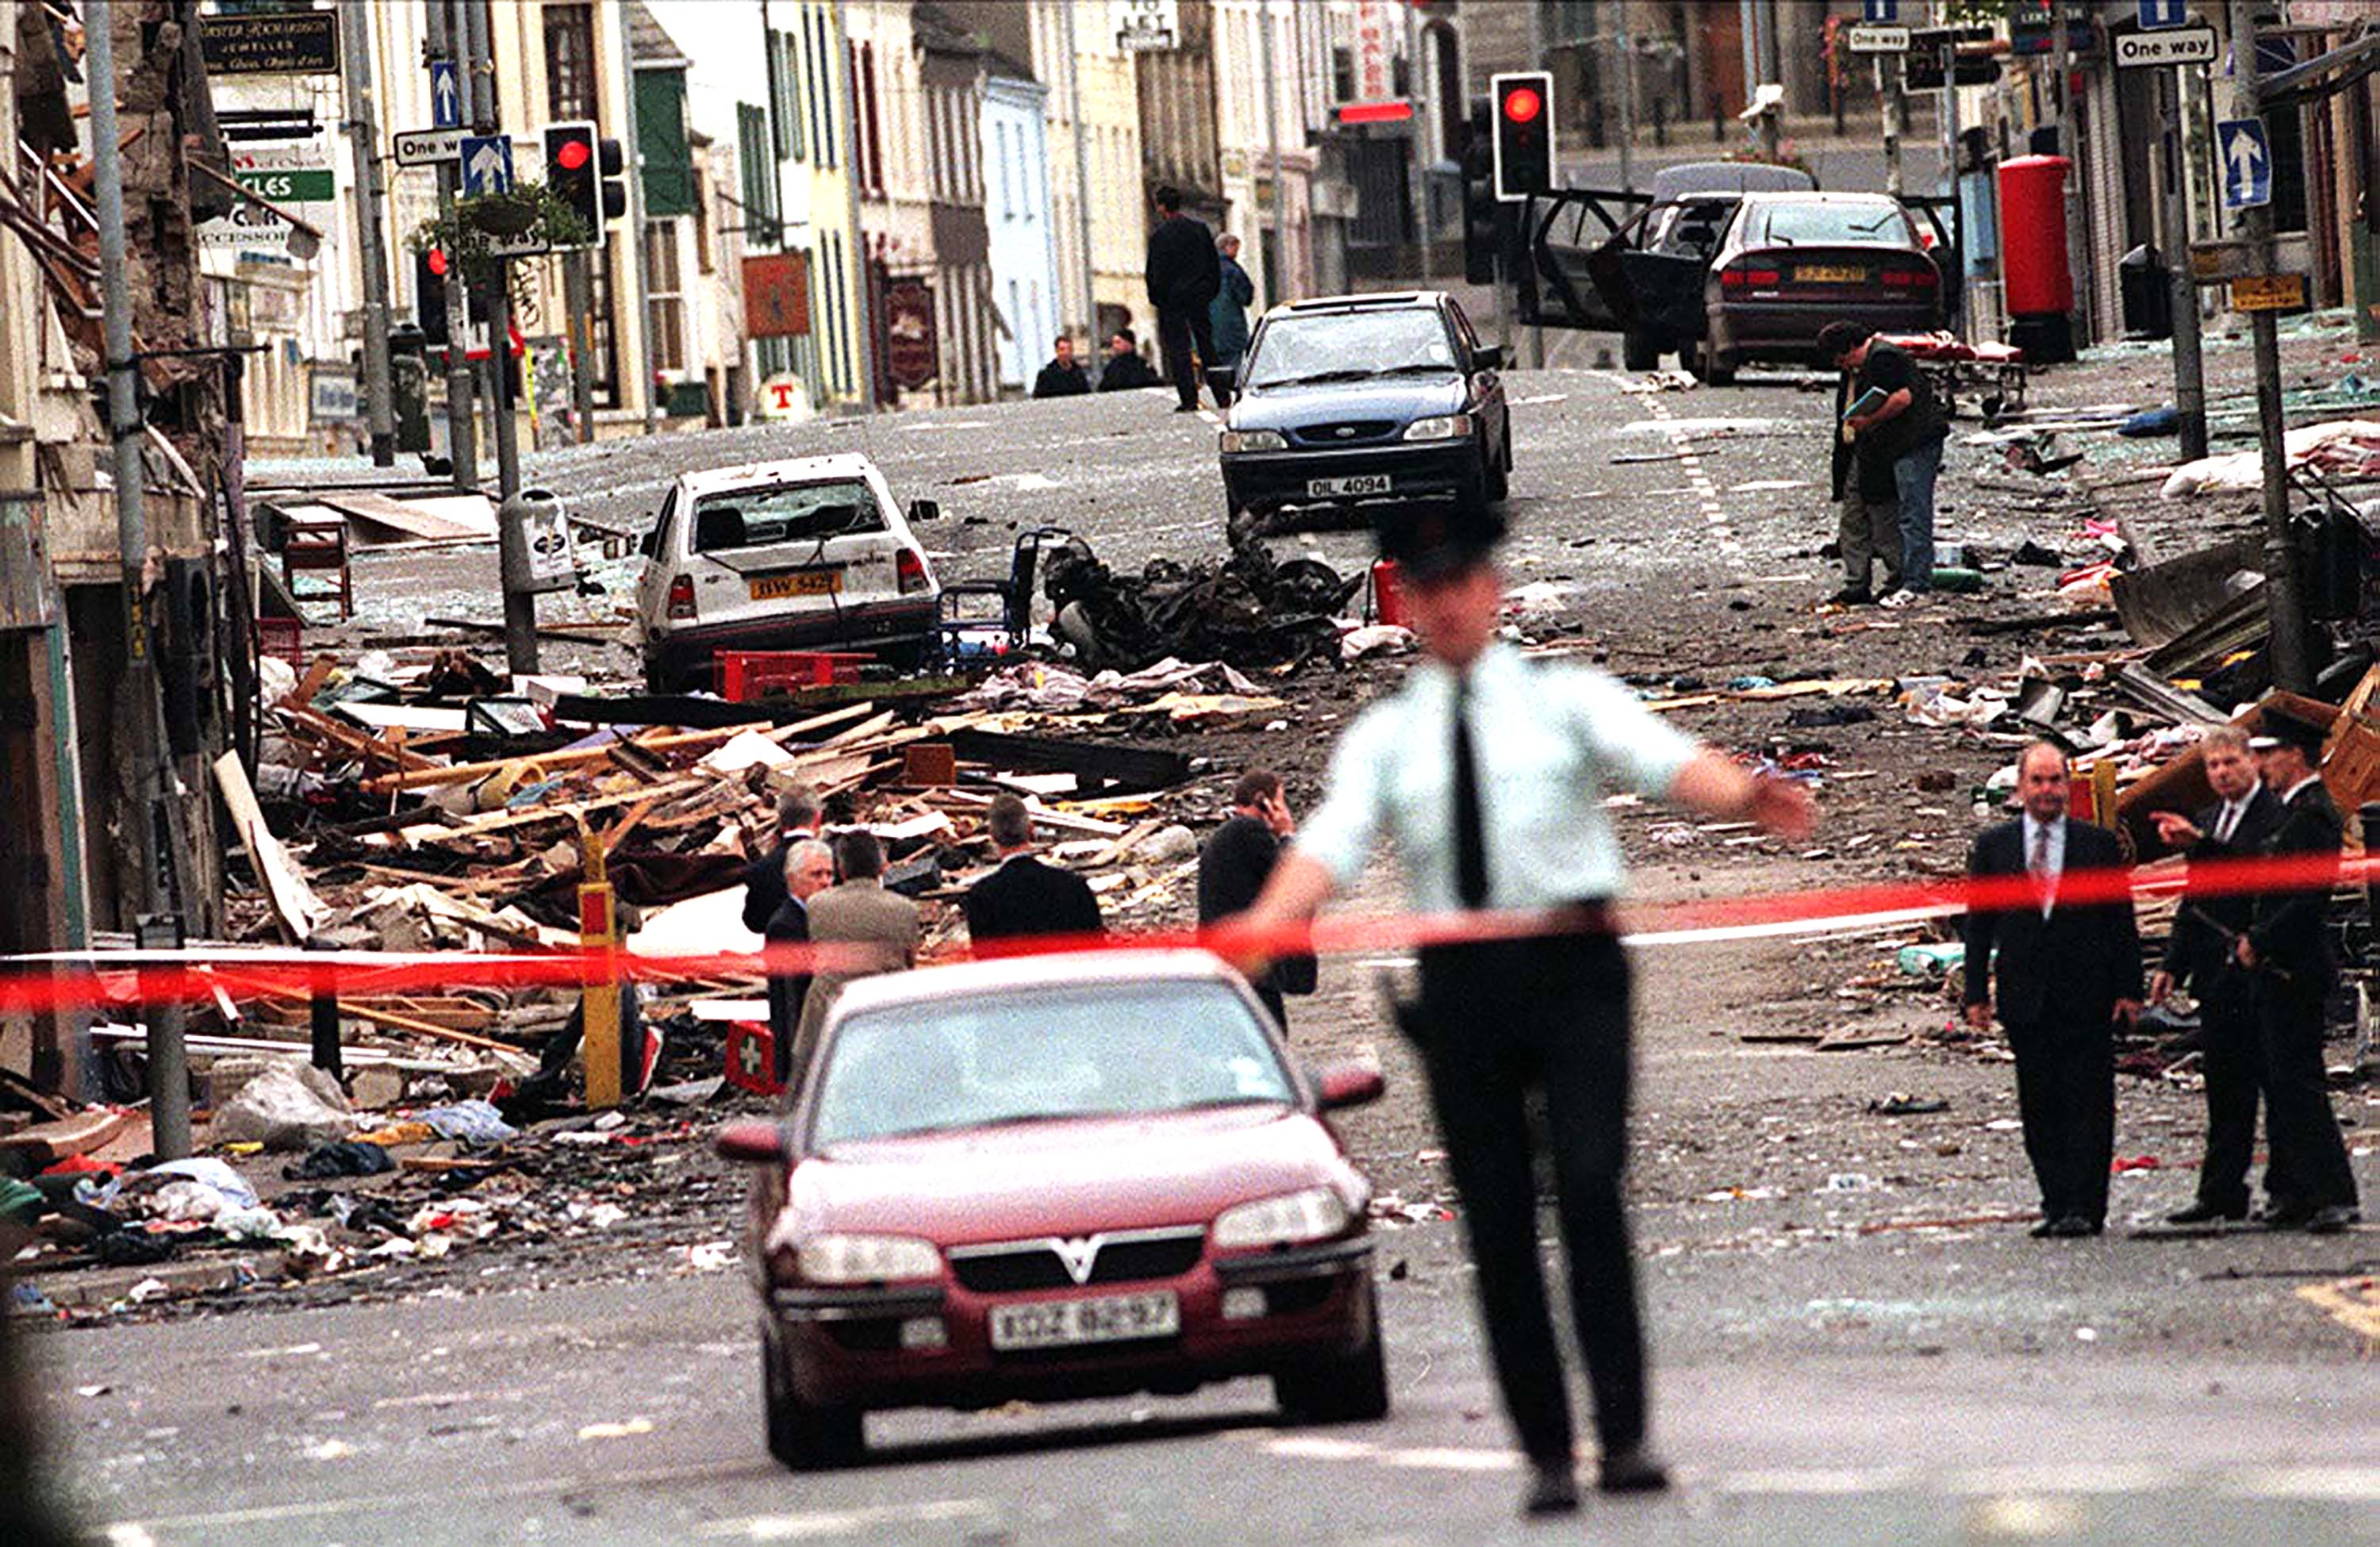 A soldier standing close to a building that has been destroyed by a bomb during the Troubles